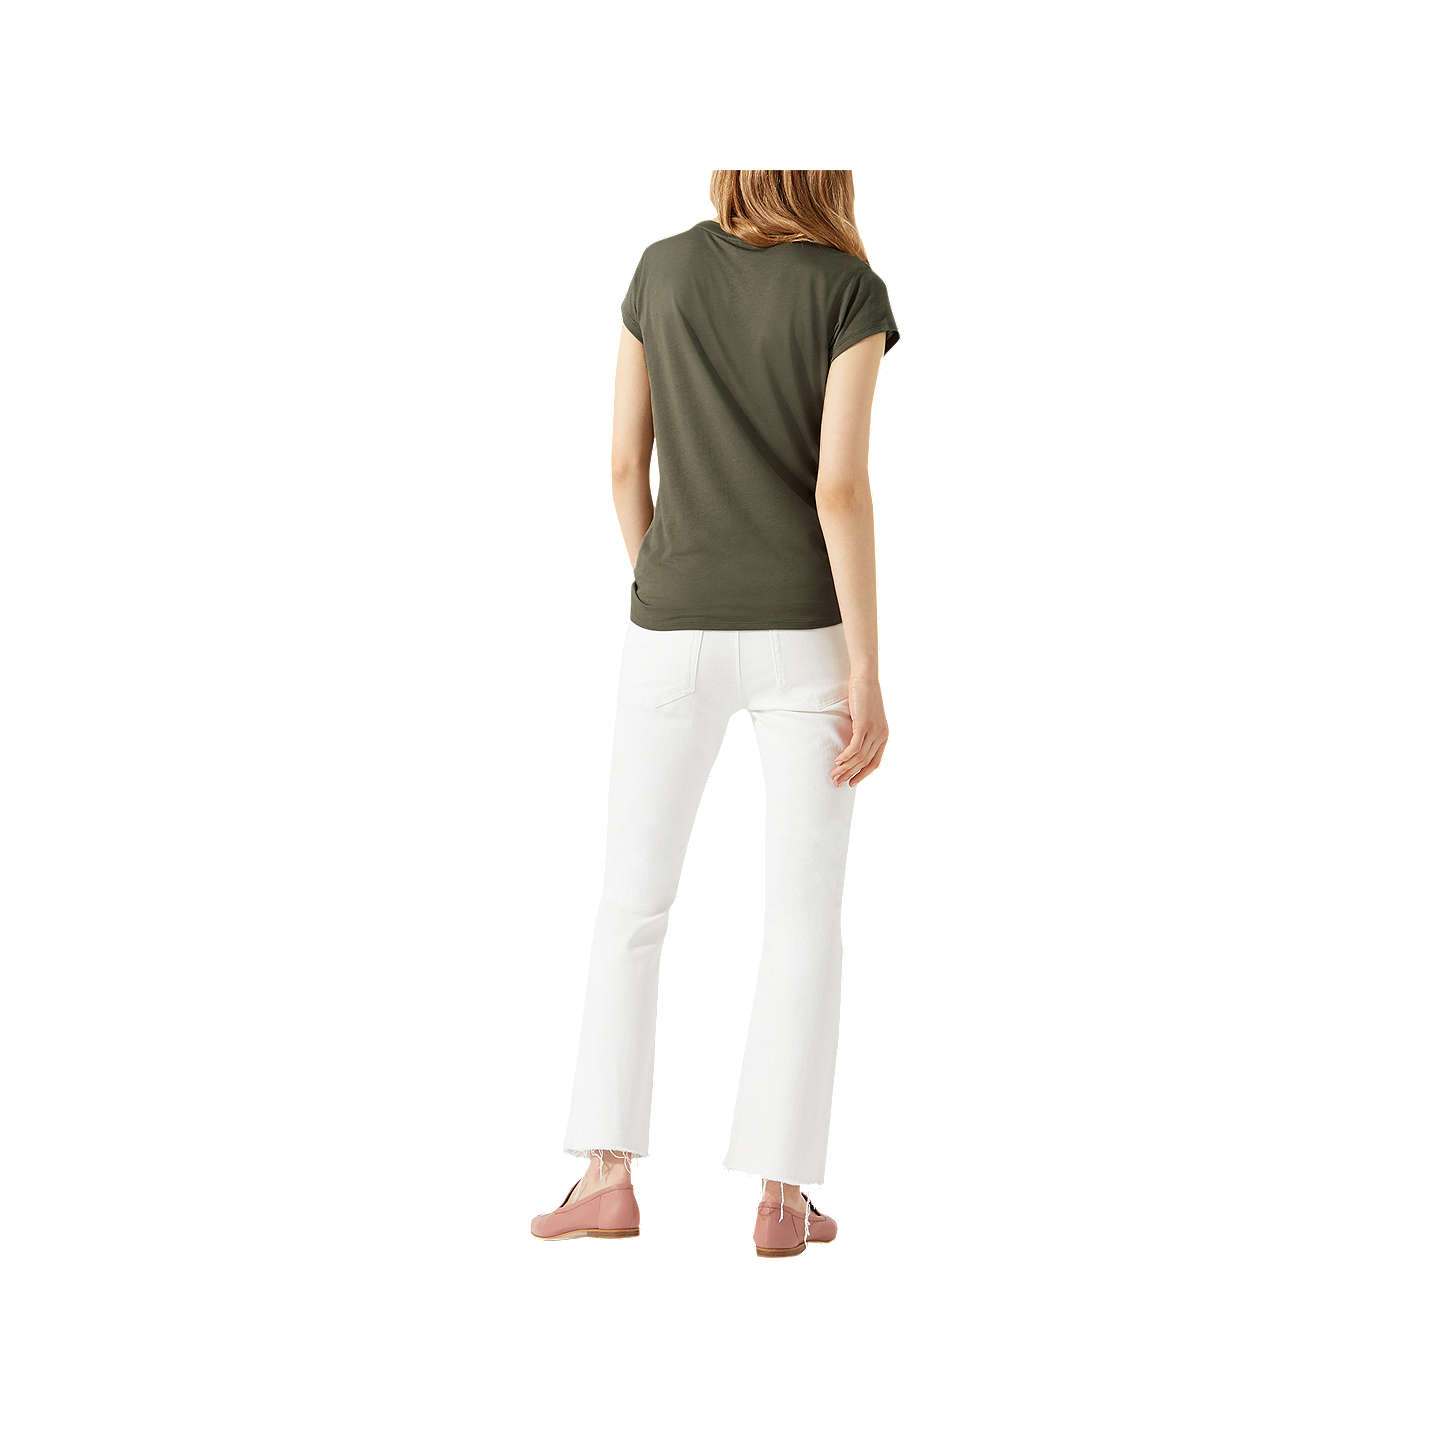 BuyJigsaw Pima Cotton Blend T-Shirt, Khaki, XS Online at johnlewis.com